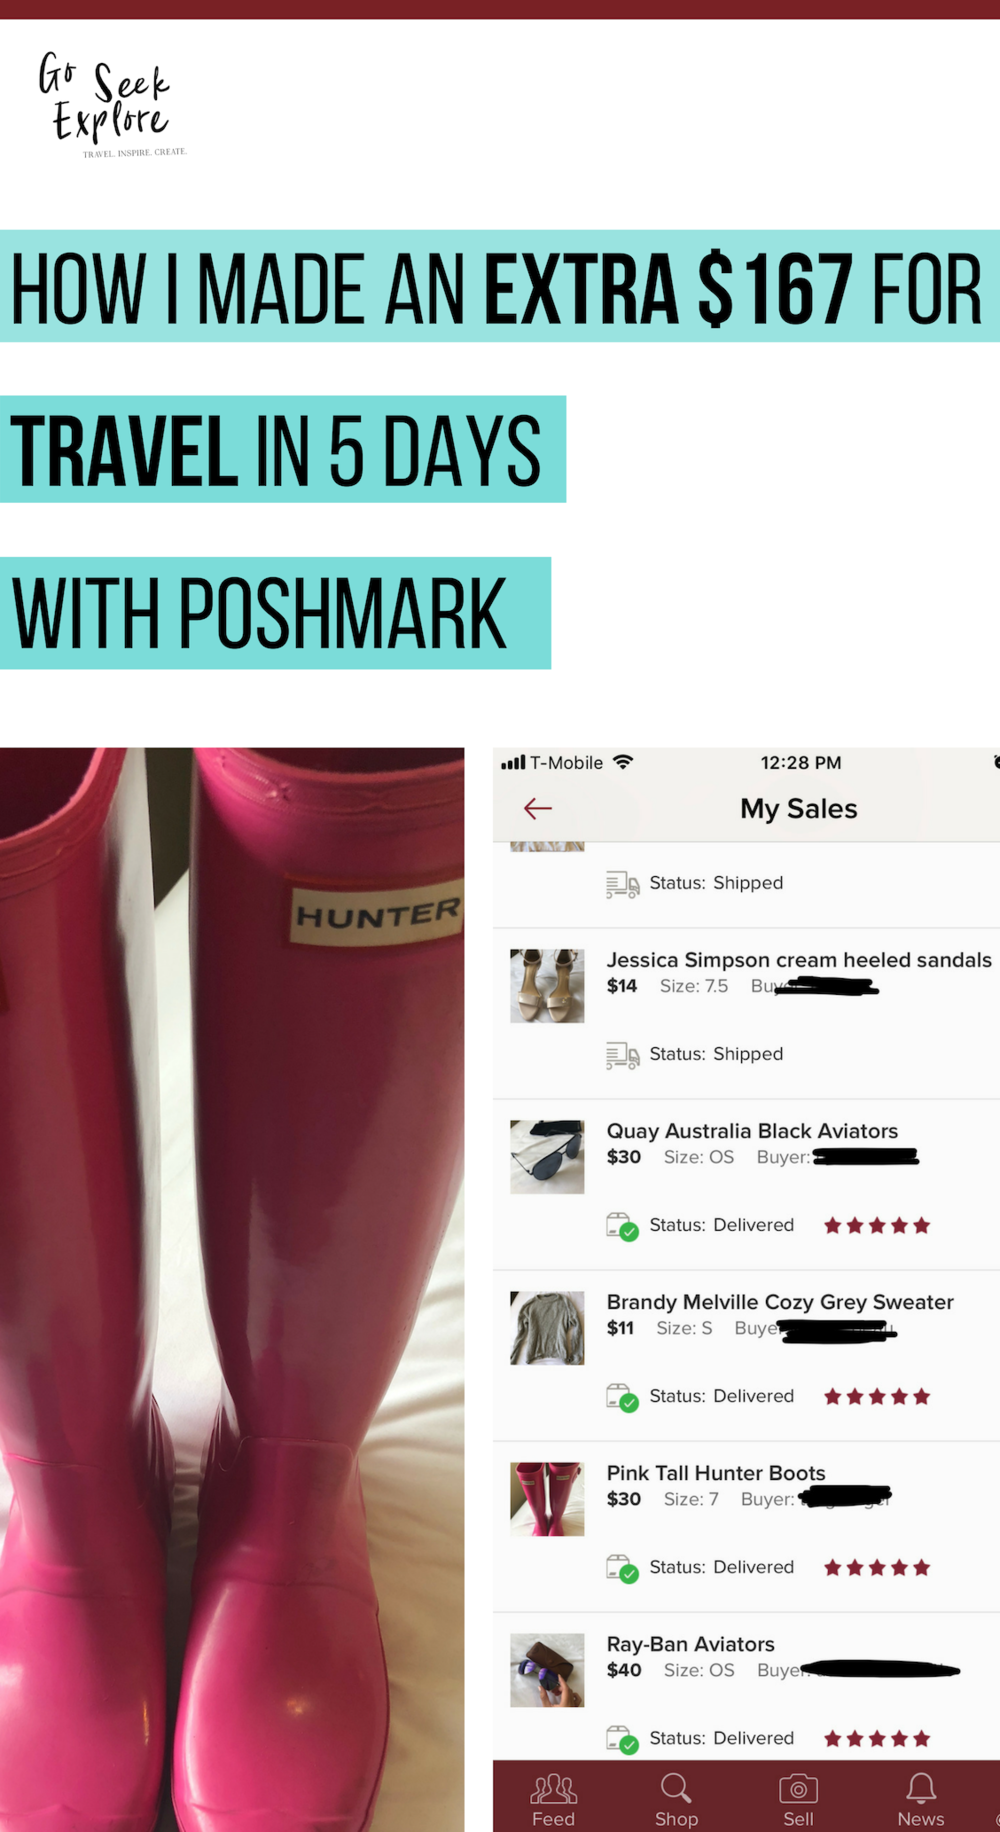 Need to make some extra cash for your next trip? Here's how I made $167 for travel in 5 days using the Poshmark app. All I did was upload old stuff from my closet and sold it through the app. Click through to see how! / goseekexplore.com